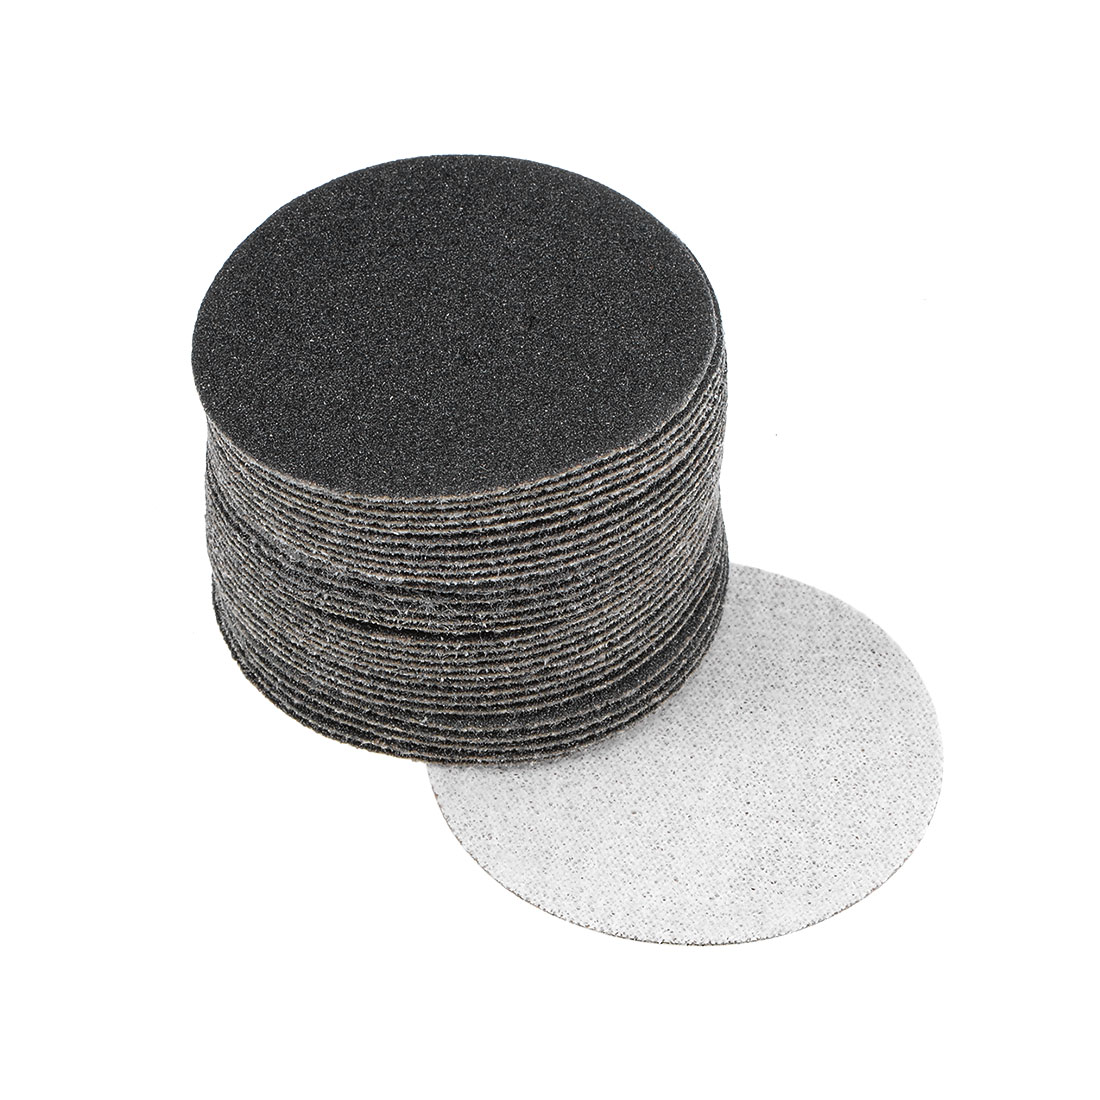 2 inch Wet Dry Discs 120 Grit Hook and Loop Sanding Disc Silicon Carbide 30pcs